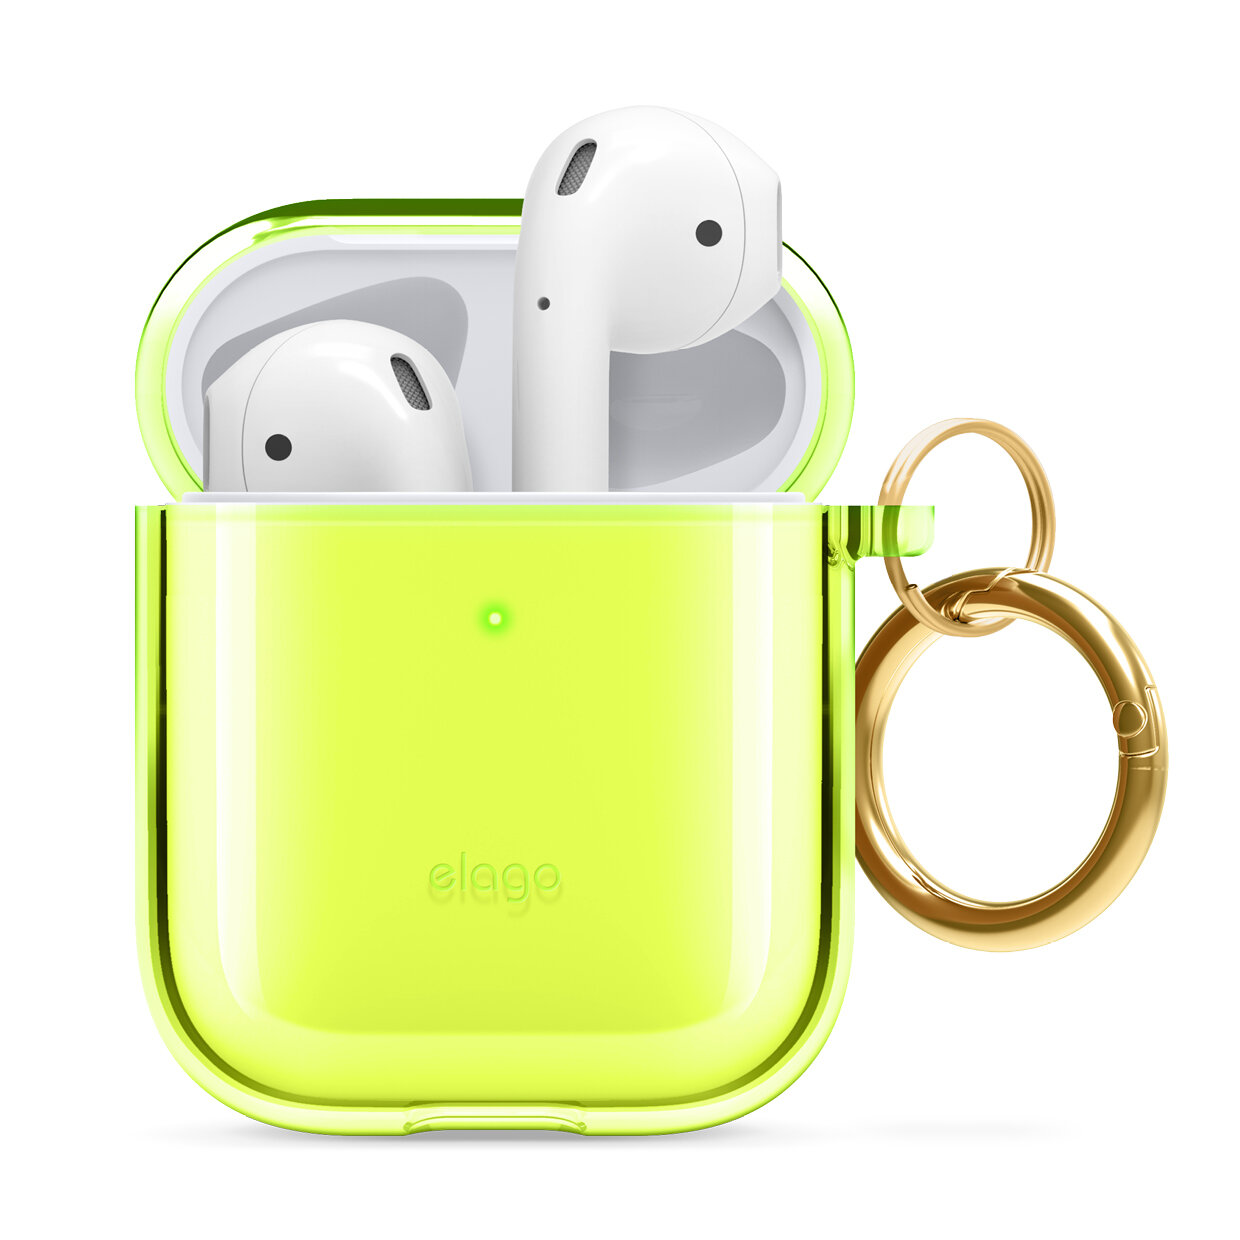 elago Clear Airpods Case with Keychain Designed for Apple Airpods 1 /& 2 Neon Yellow